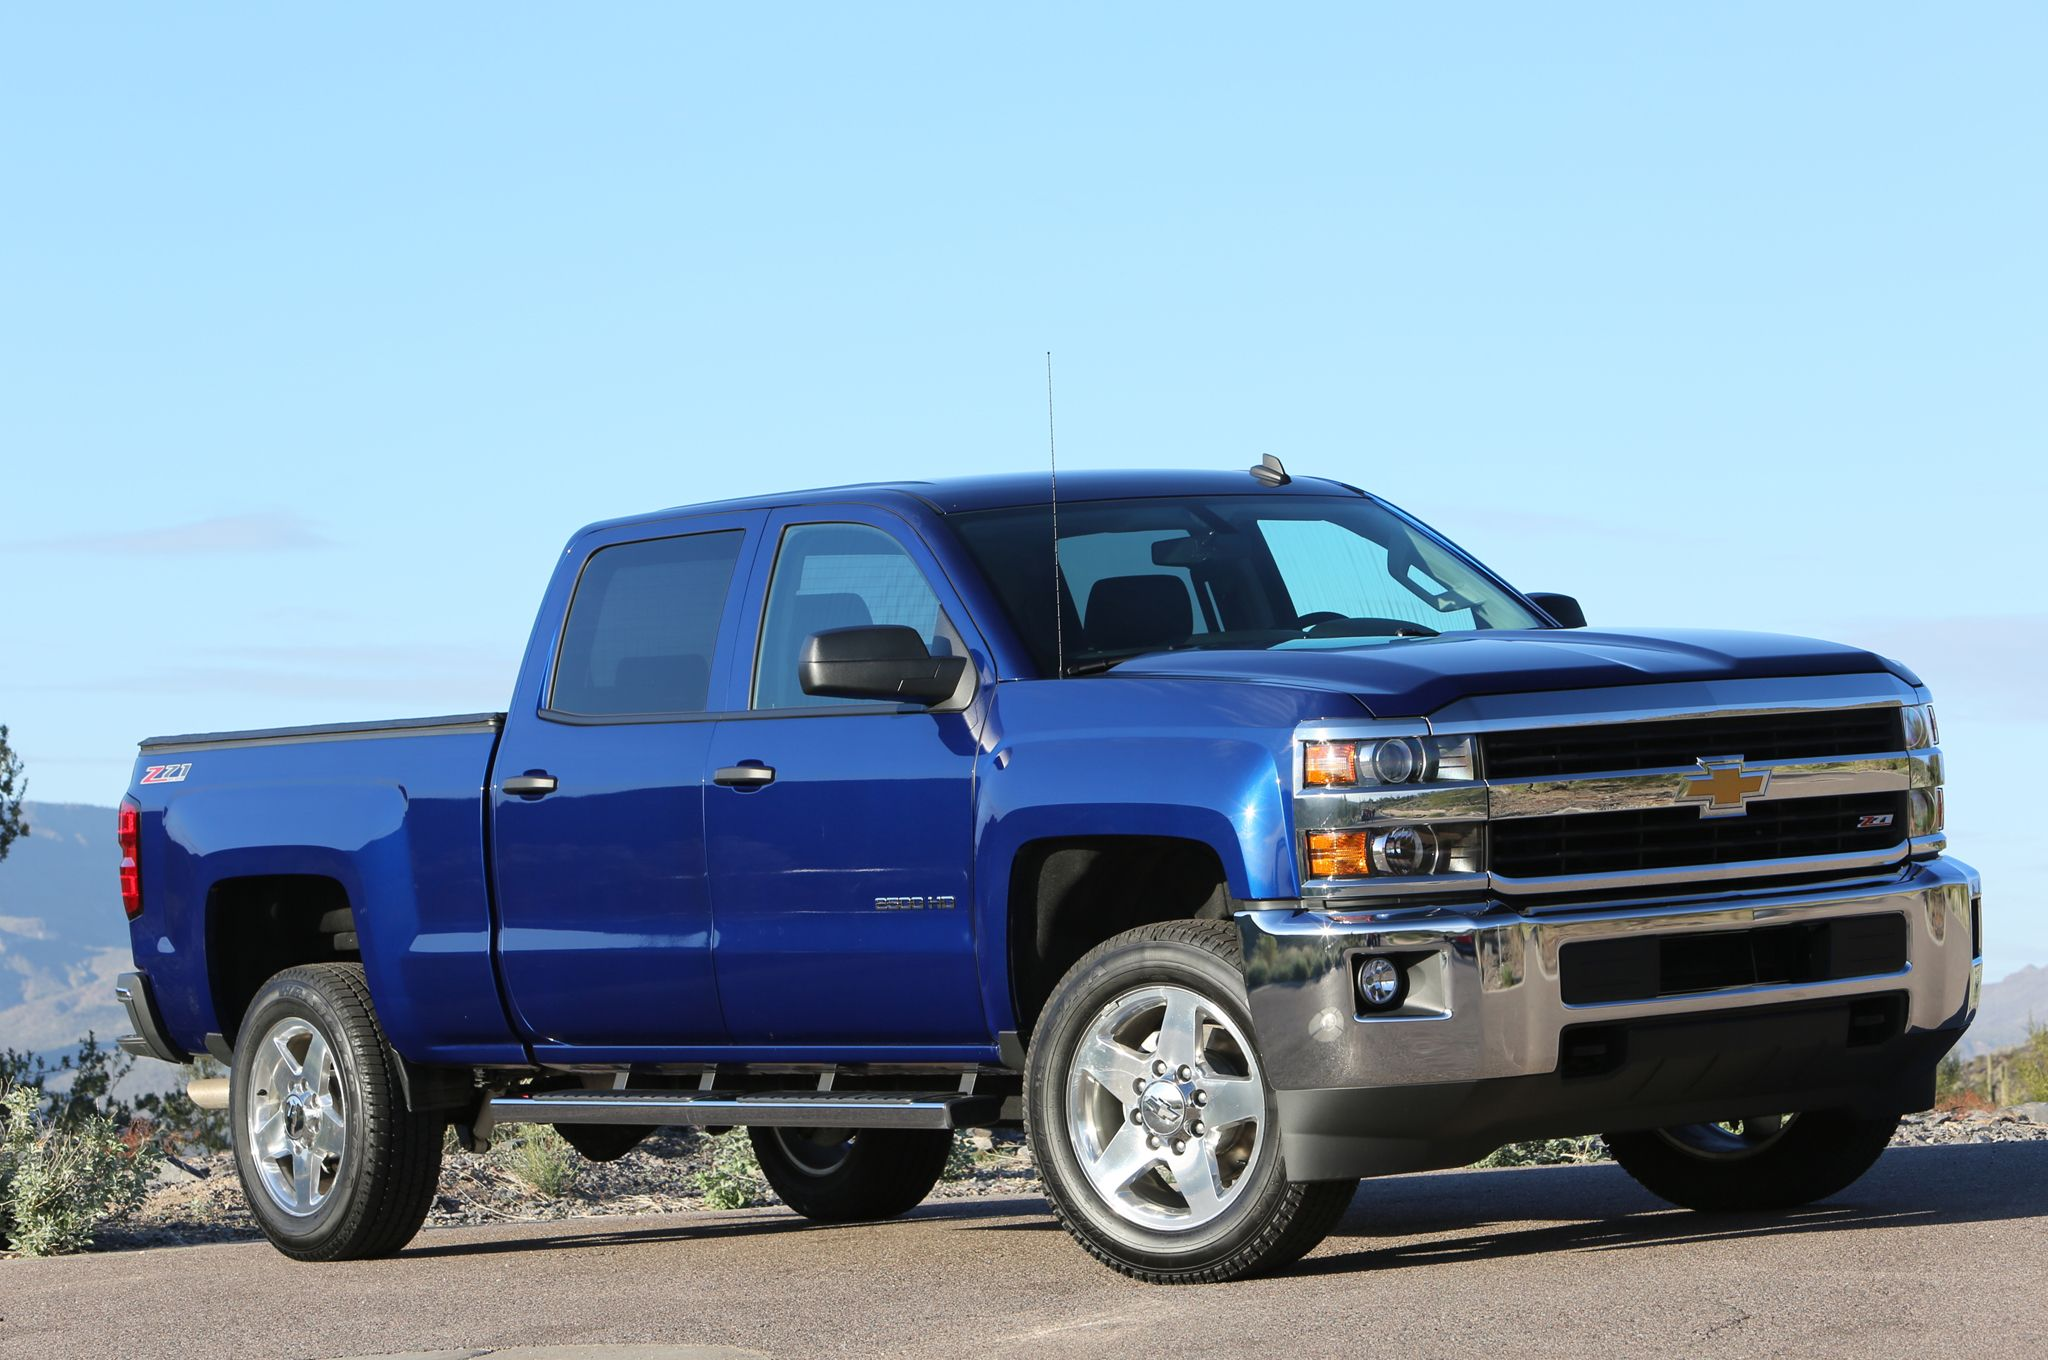 2020 Chevy Silverado 1500 Review Pricing And Specs Diesel Trucks Duramax Chevrolet Silverado Chevrolet Silverado 2500